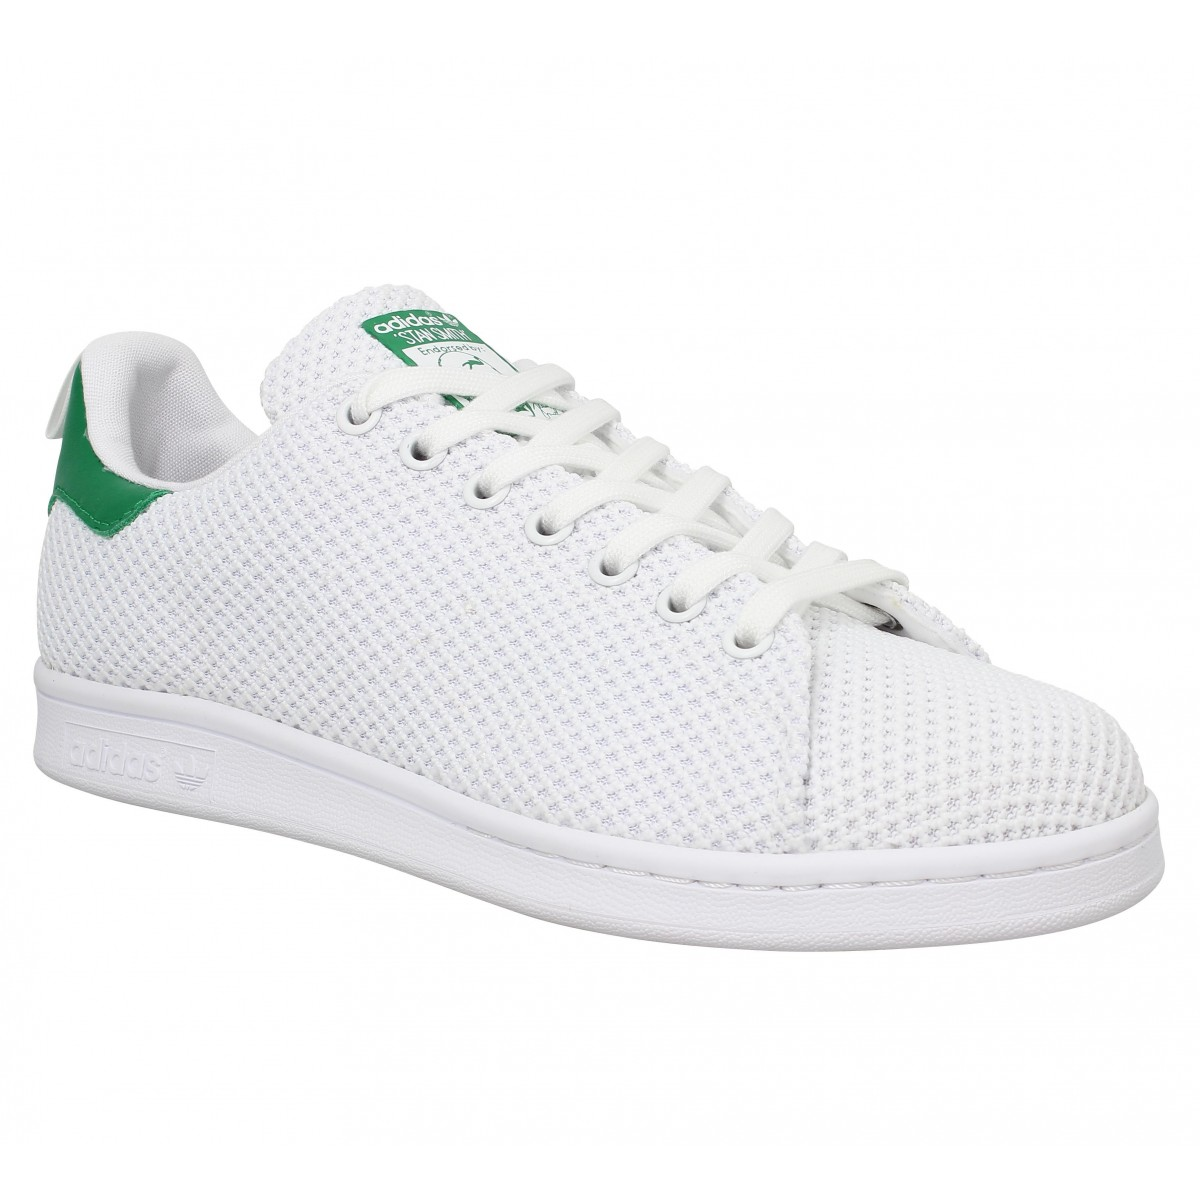 Baskets ADIDAS Stan Smith toile Blanc Vert